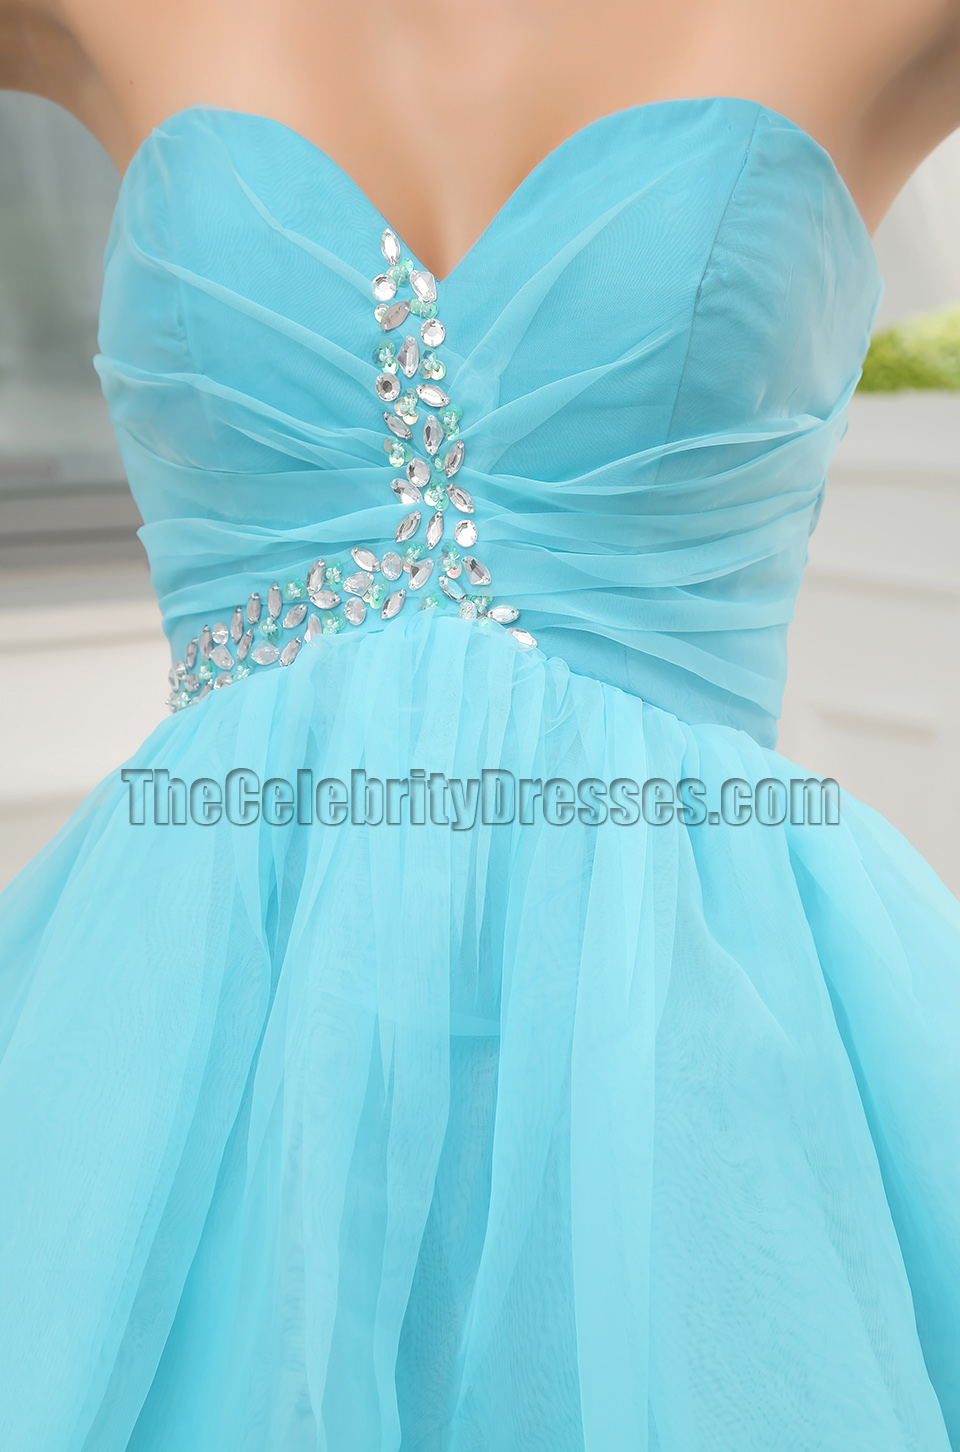 Cute Blue Strapless Short Mini Party Dress Homecoming Dresses ...